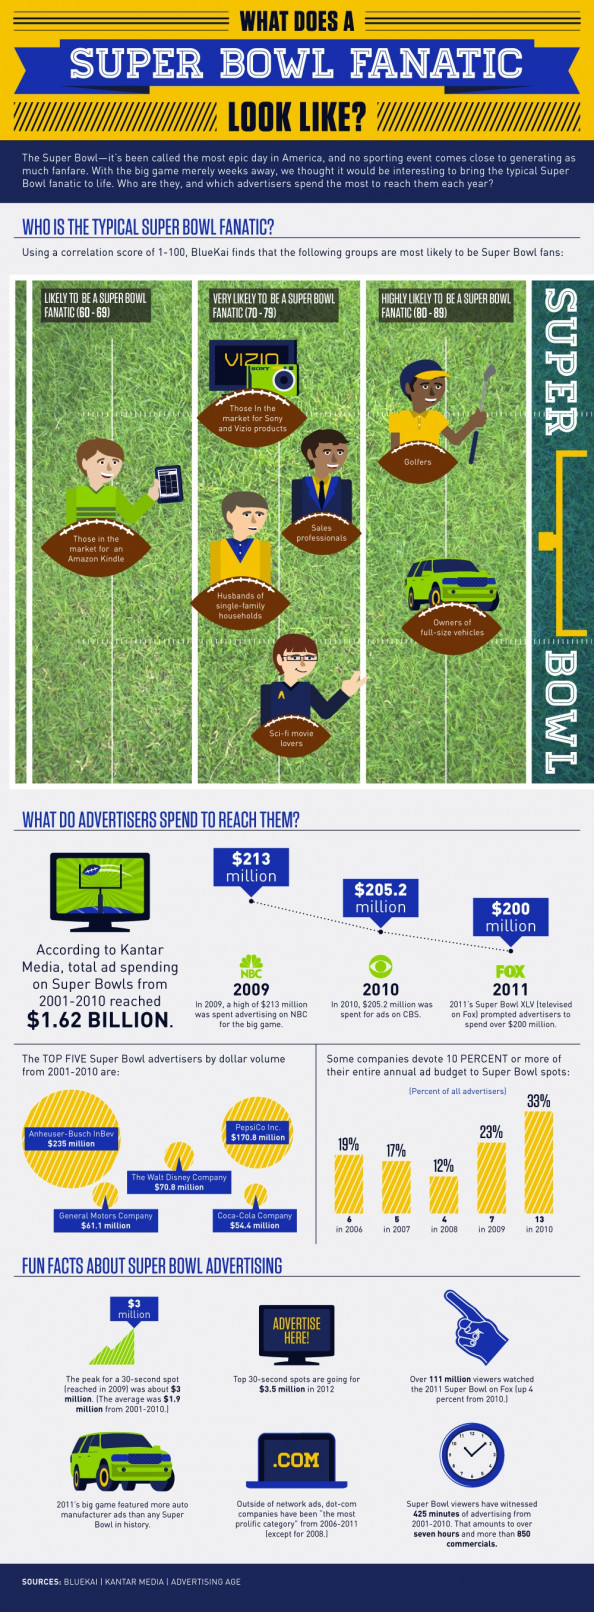 Super Bowl Fanatic Infographic